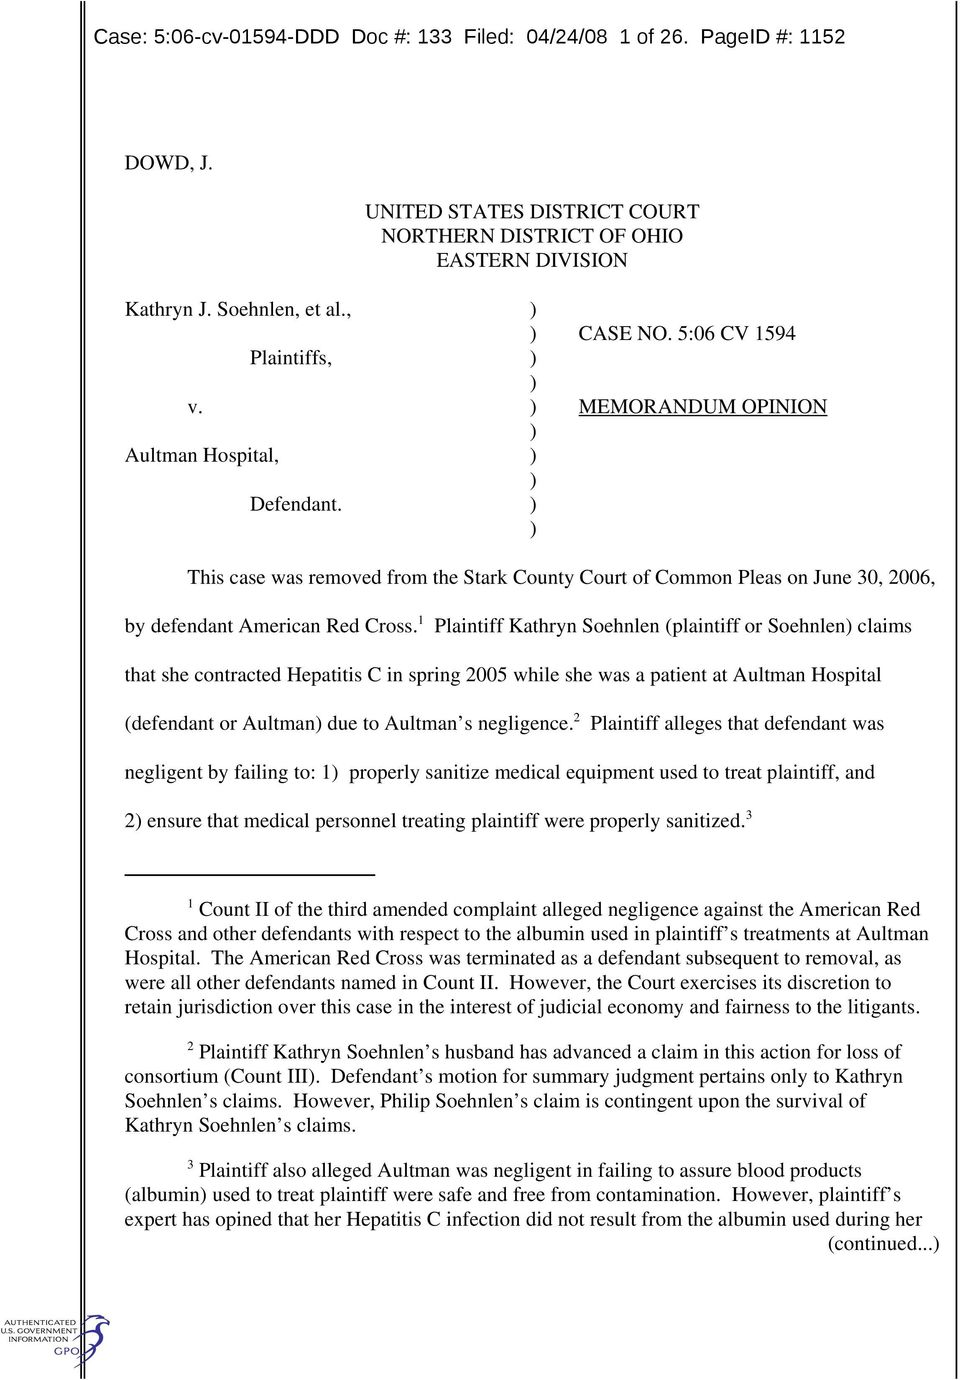 5:06 CV 1594 MEMORANDUM OPINION This case was removed from the Stark County Court of Common Pleas on June 30, 2006, by defendant American Red Cross.